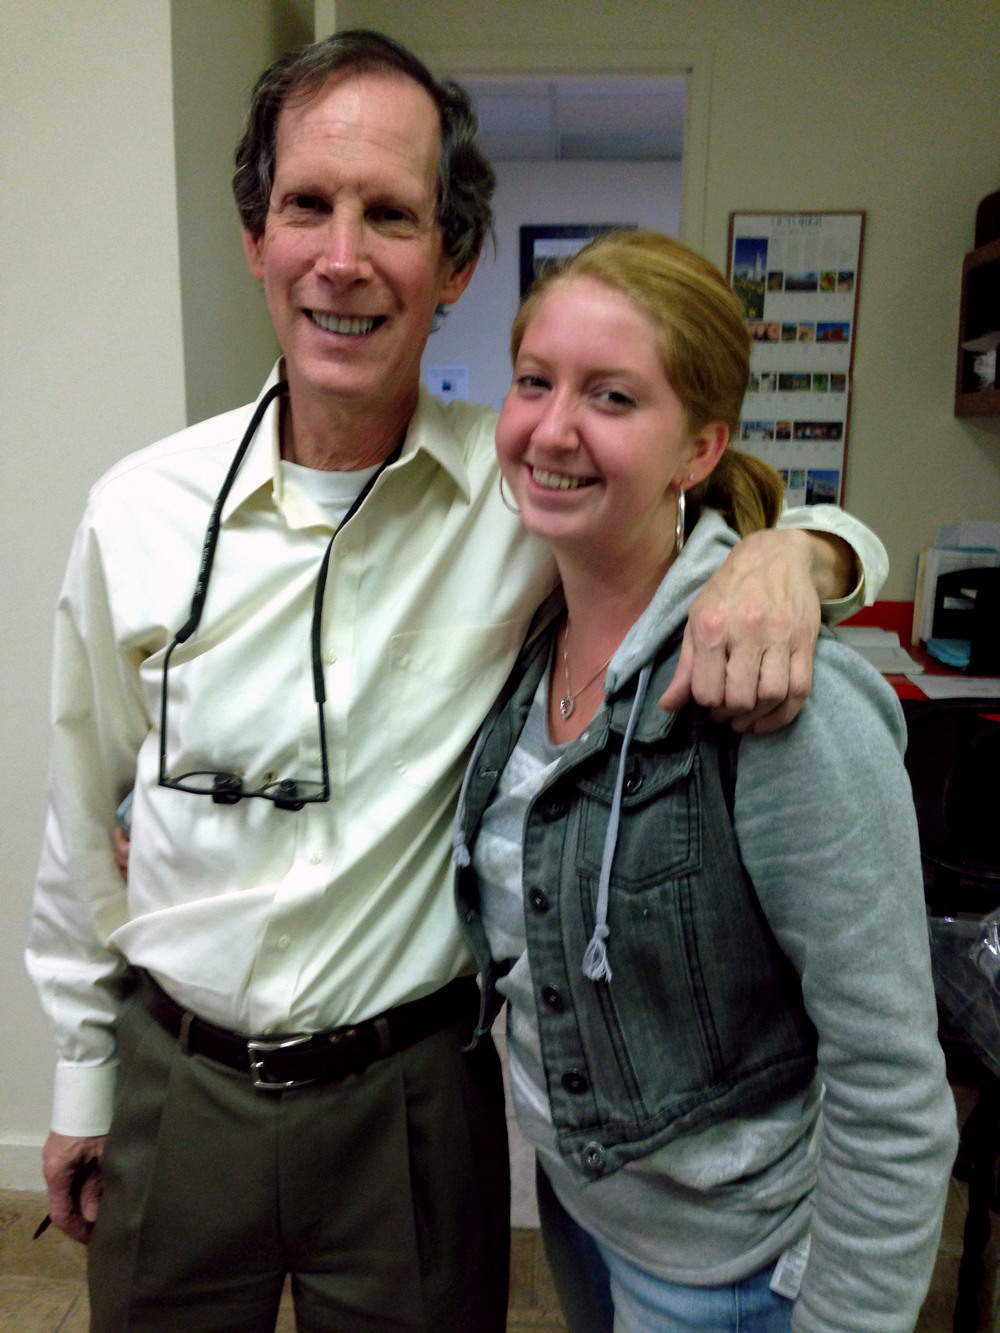 dr. halberstadt with an orthodontics patient